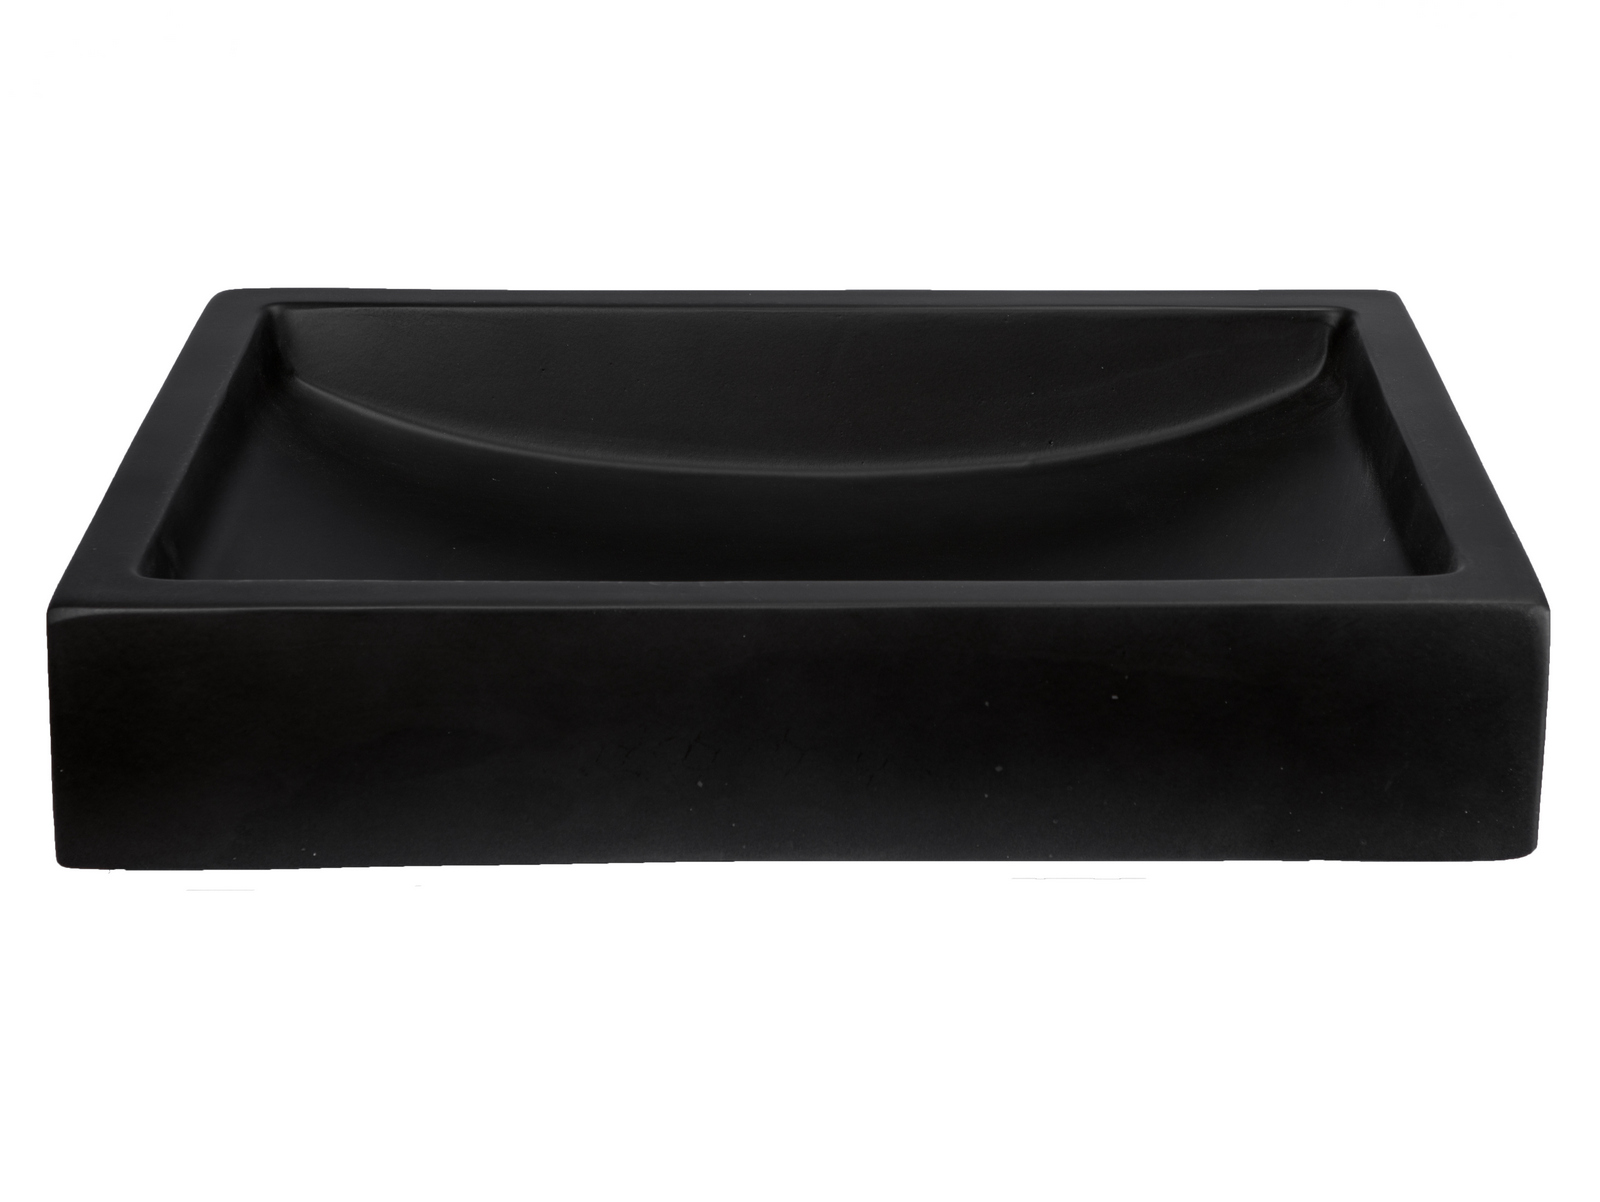 -22-in. Shallow Wave Concrete Rectangular Vessel Sink - Charcoal